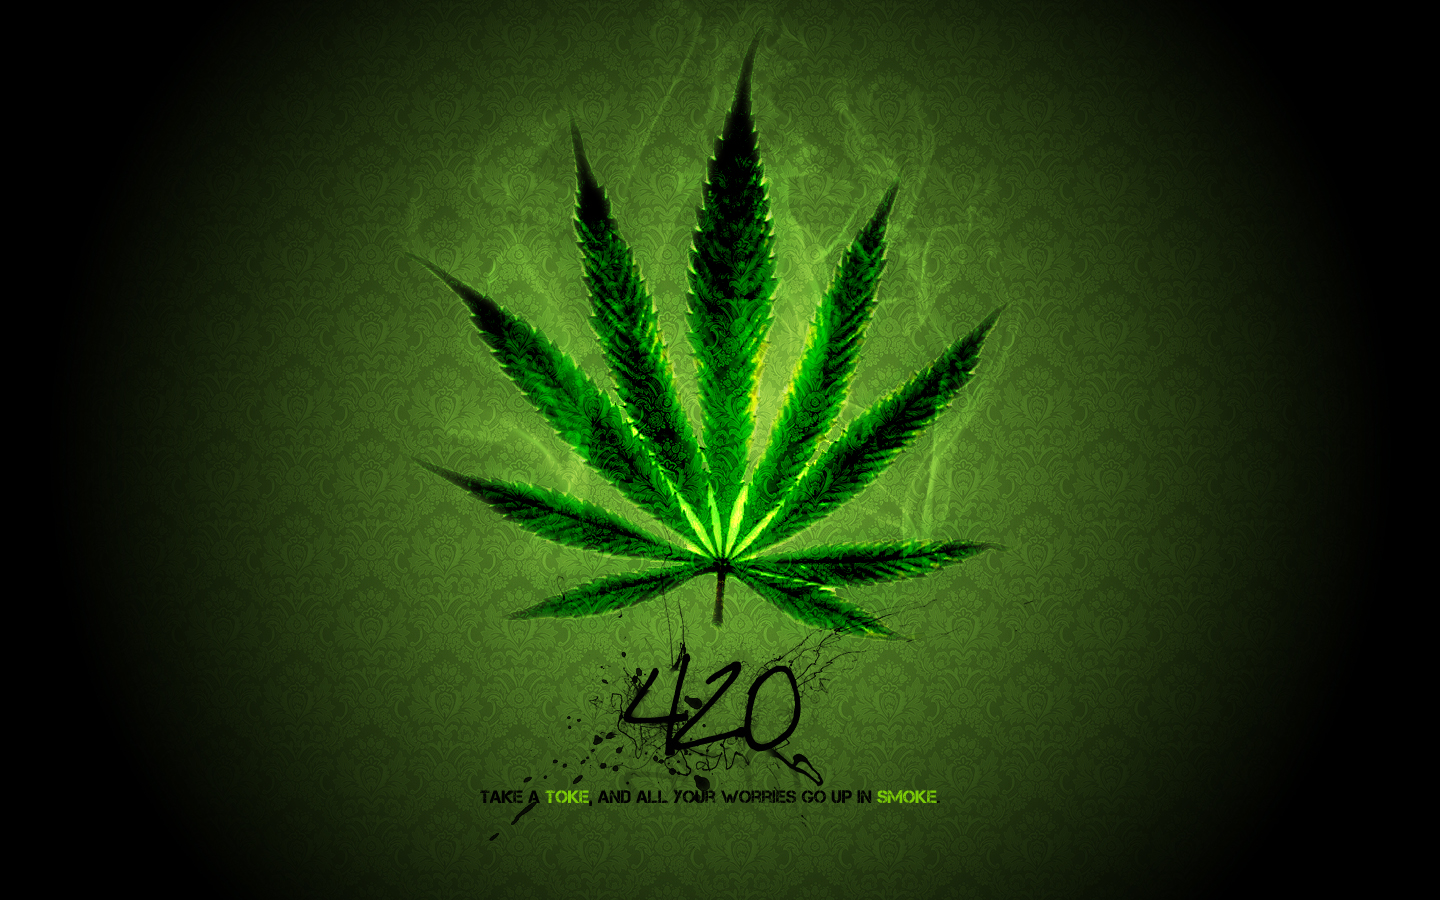 marijuana cannabis cannabis hd wallpaper 1440x900